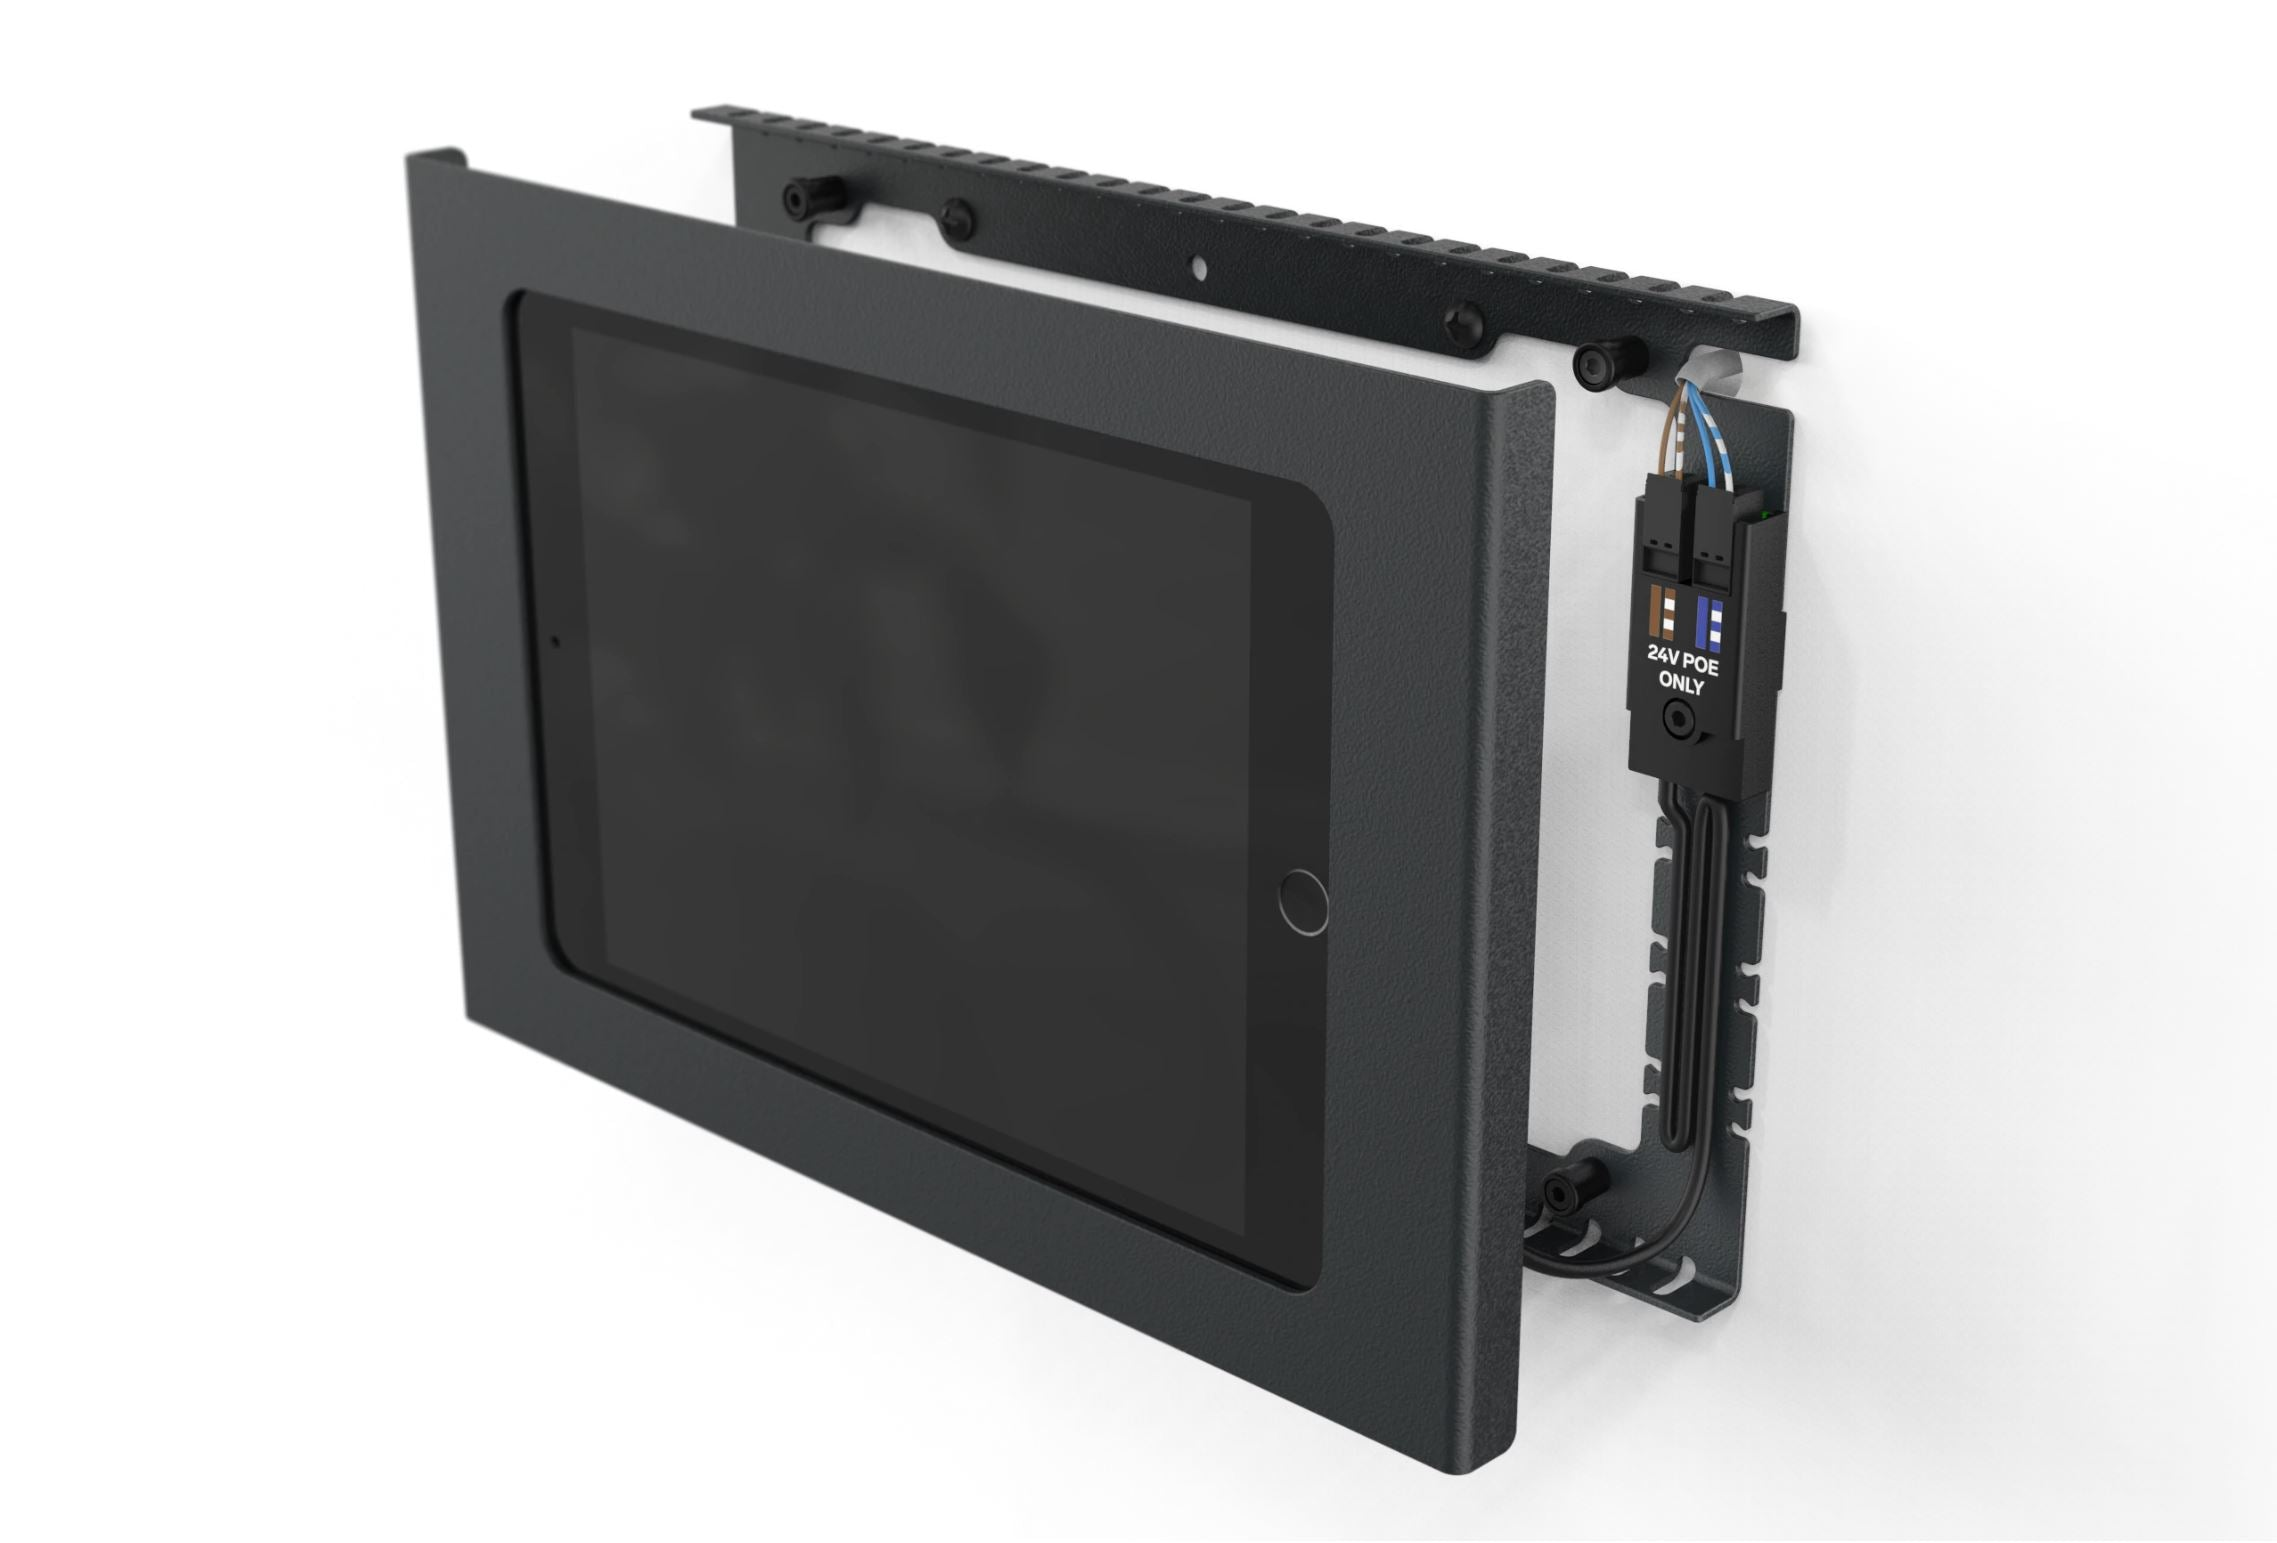 Heckler Wall Mount with PoE for iPad 10.2, black color, disassembled view